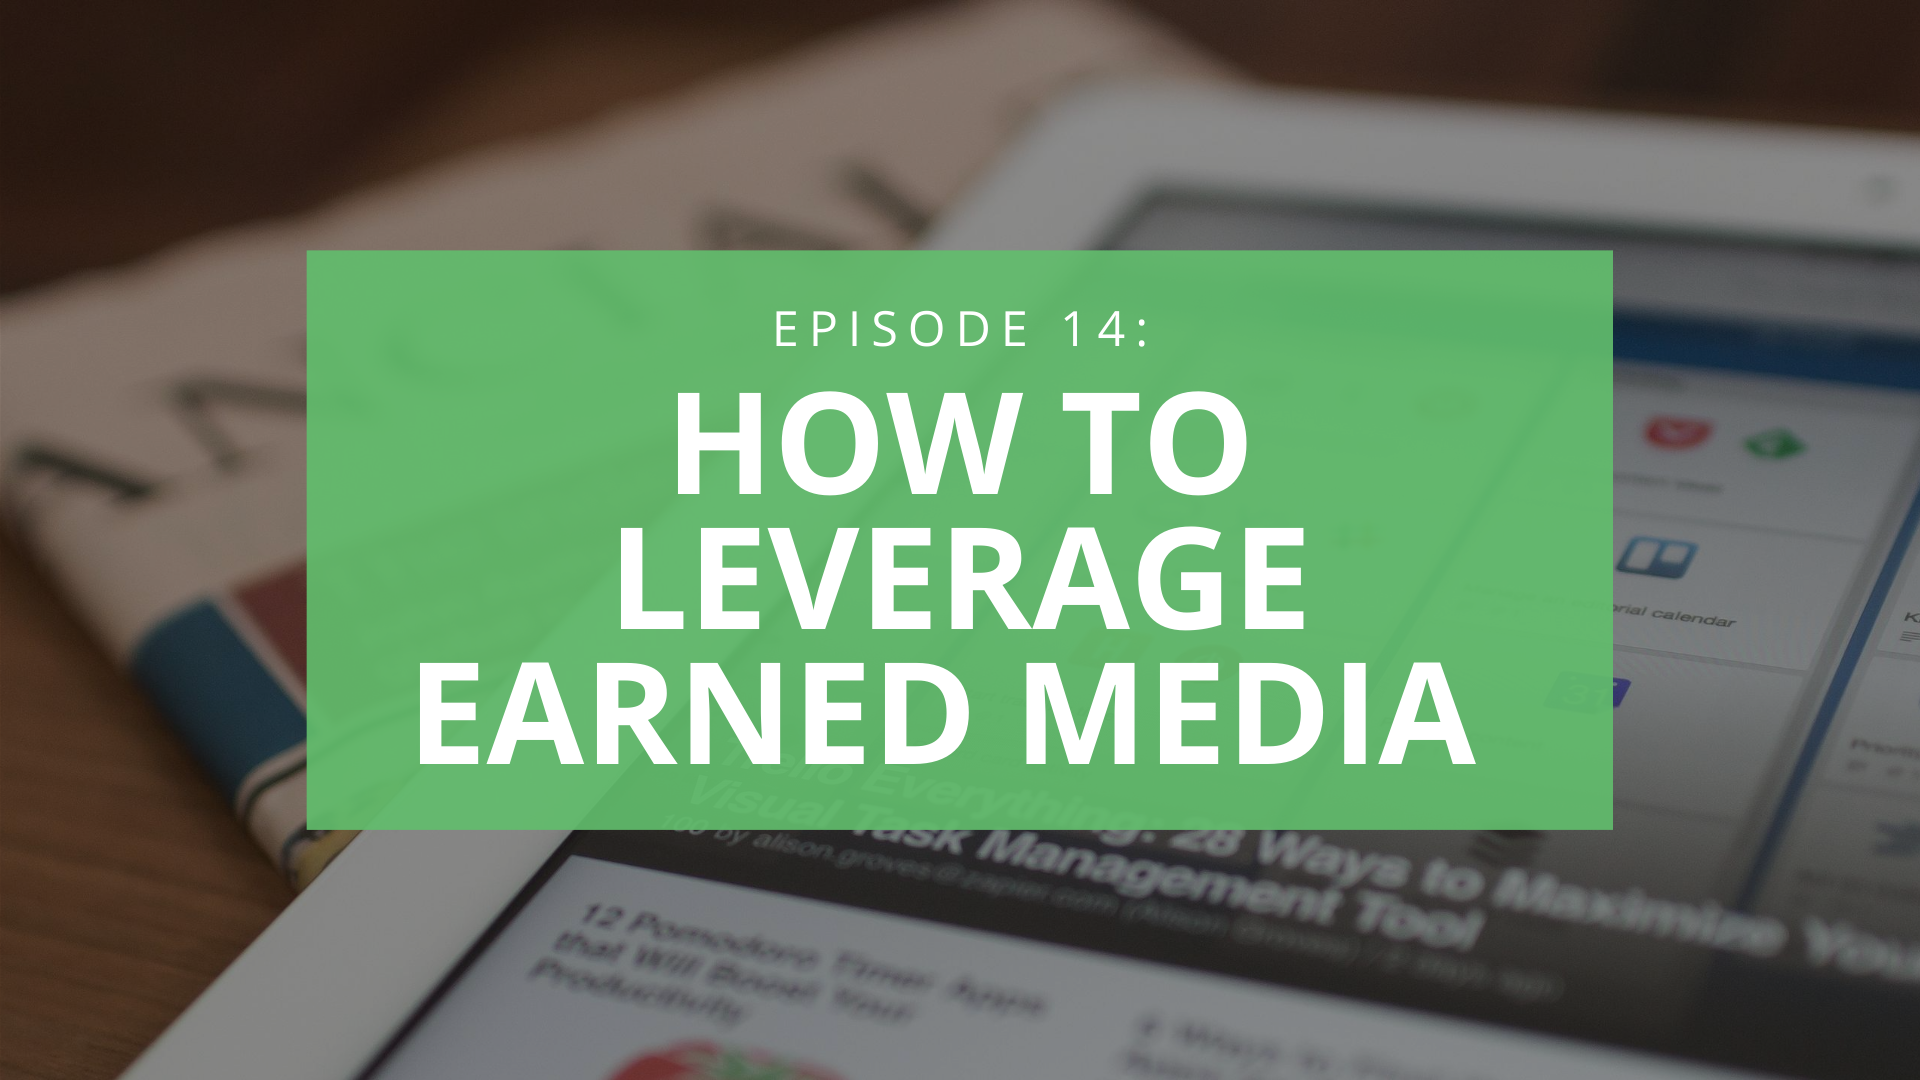 How to Leverage Earned Media